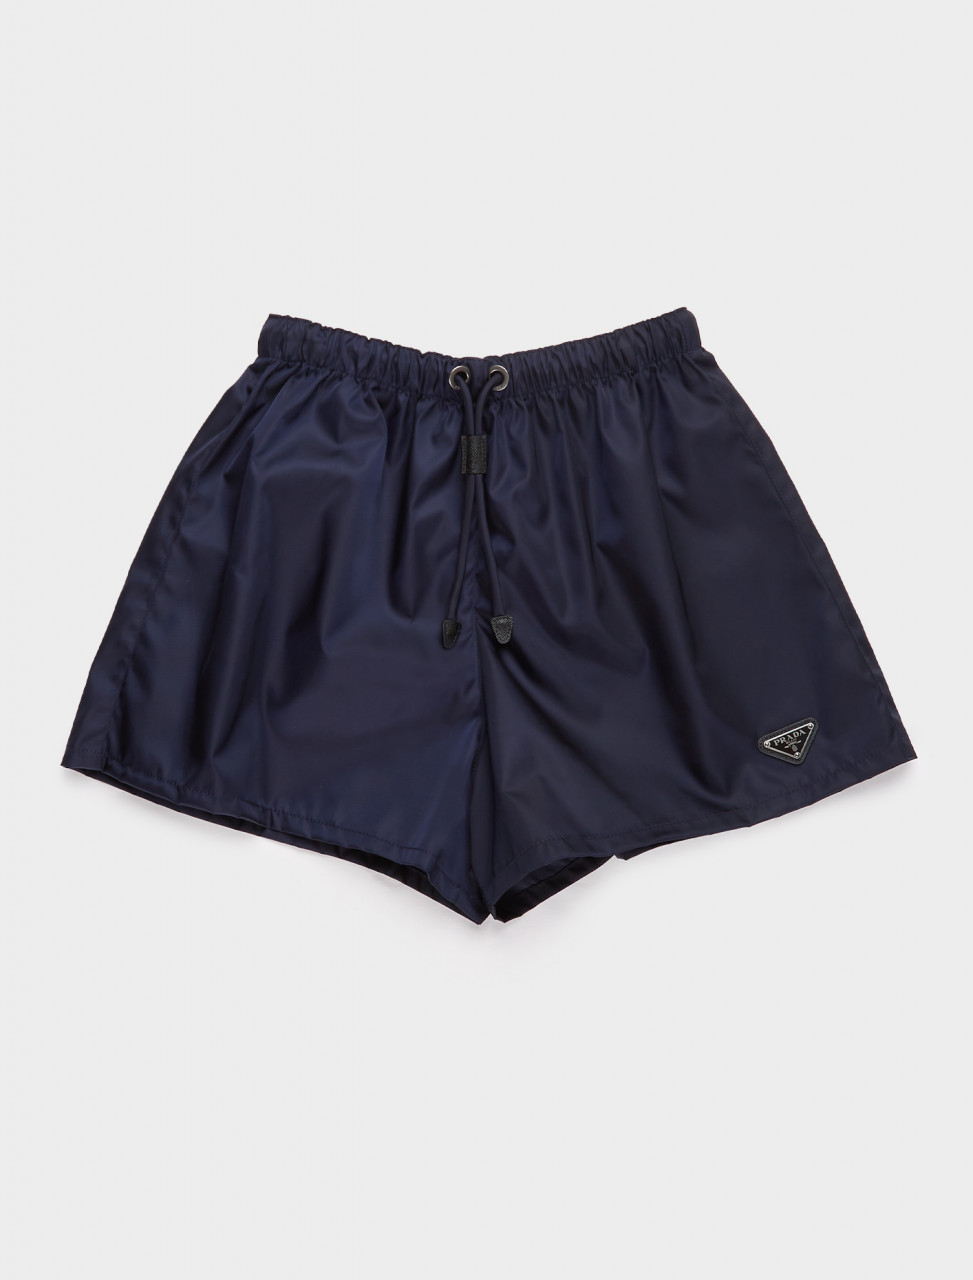 22H840-F0008 PRADA RE NYLON SHORTS BLUE